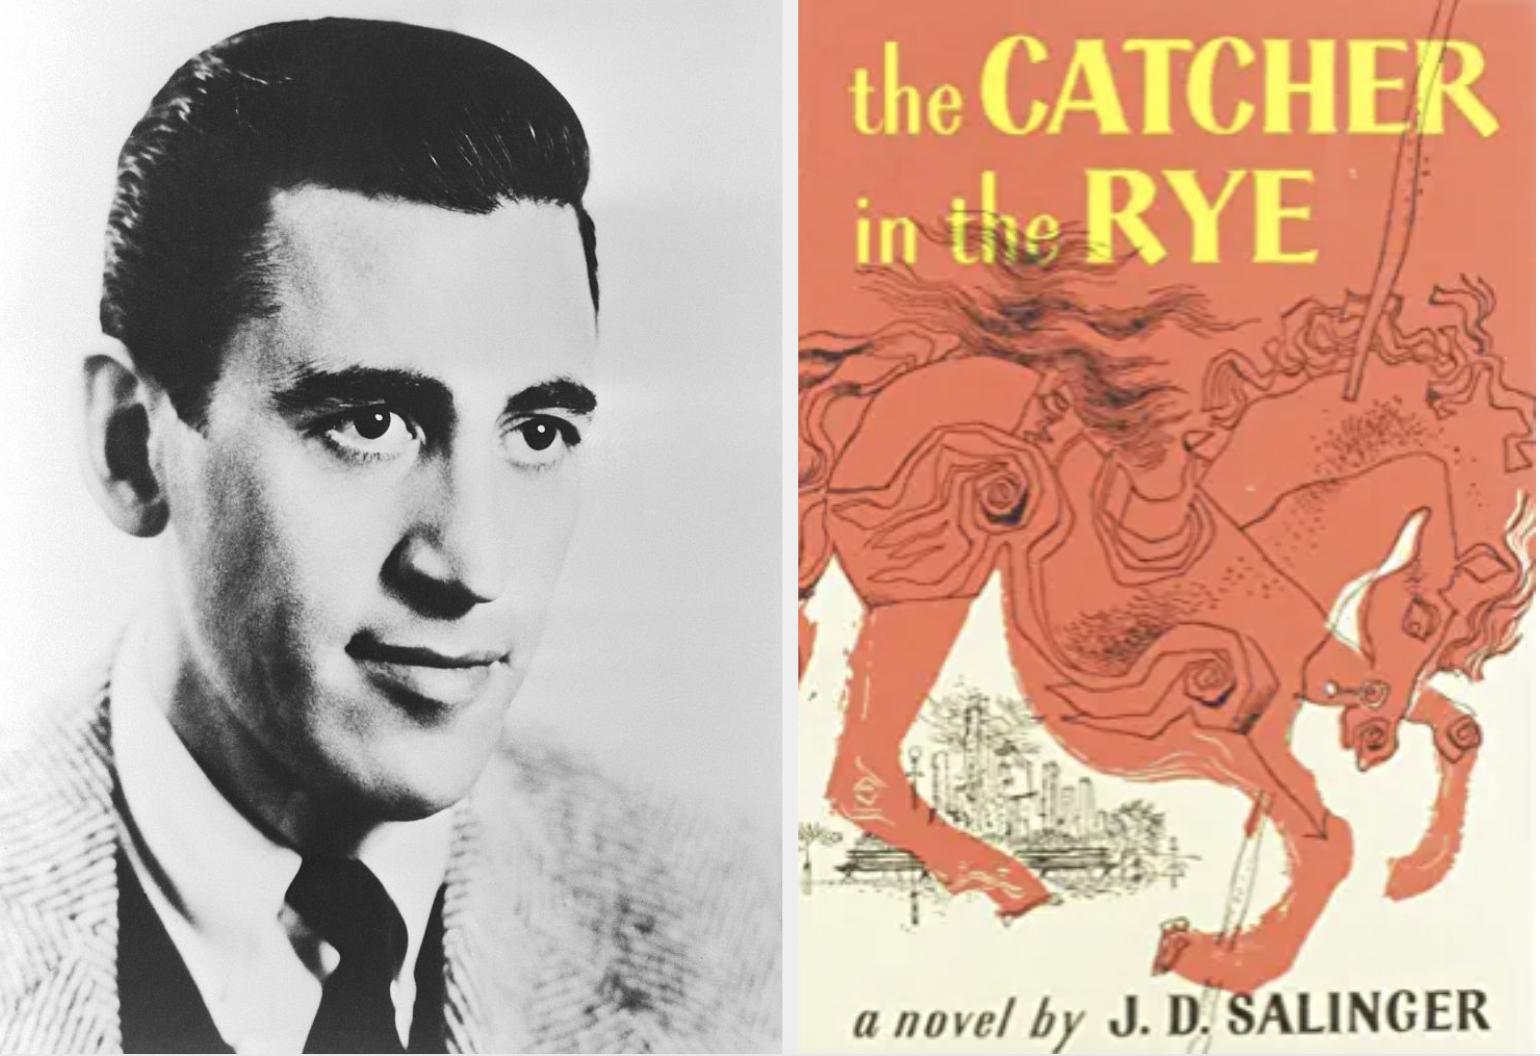 J.D. Salinger and the cover of the catcher in the rye